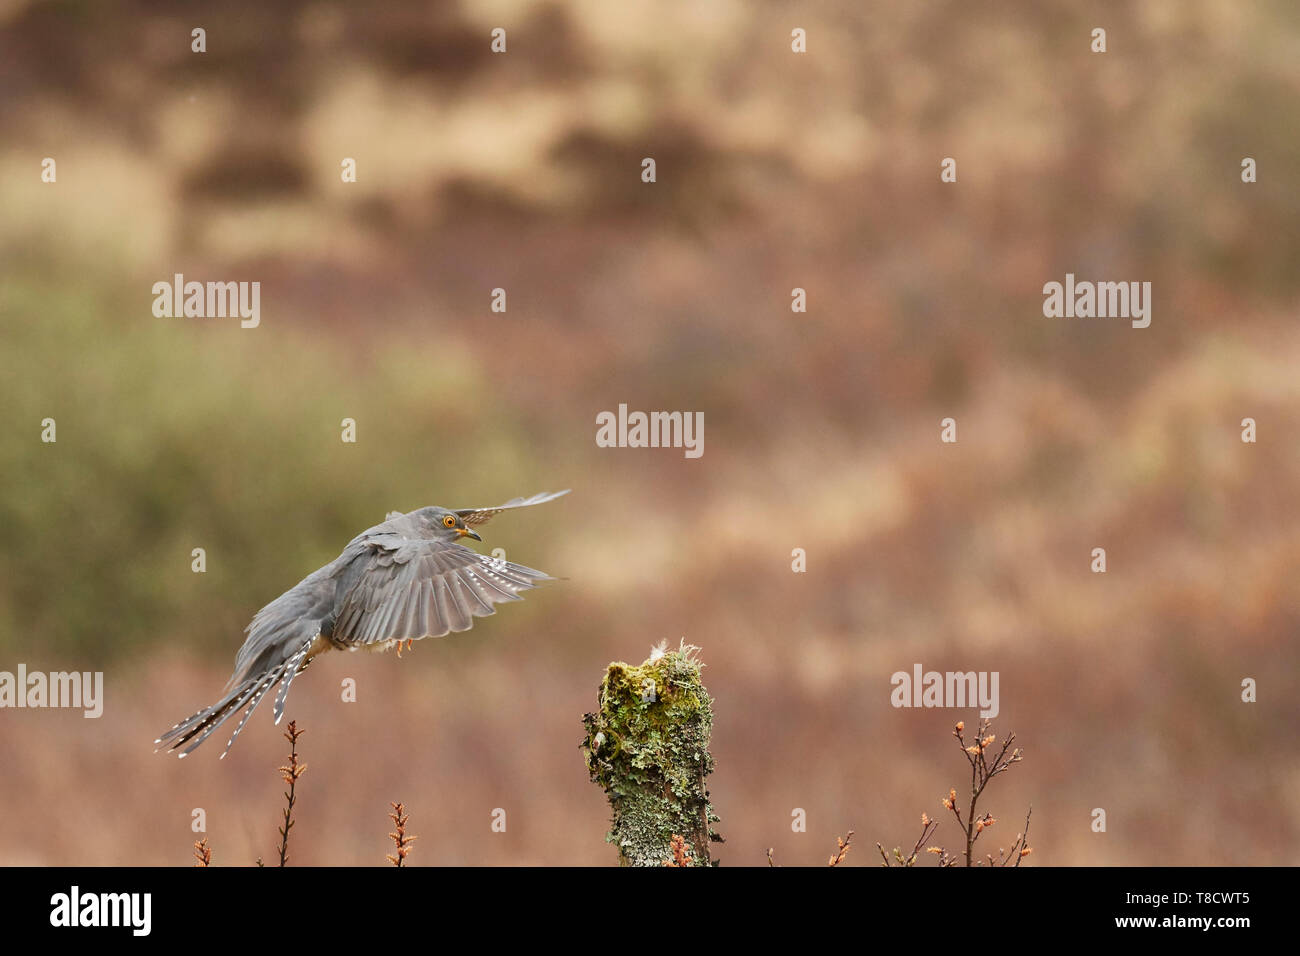 Male Common Cuckoo, Cuculus canorus, in flight, Dumfries and Galloway, Scotland, UK - Stock Image